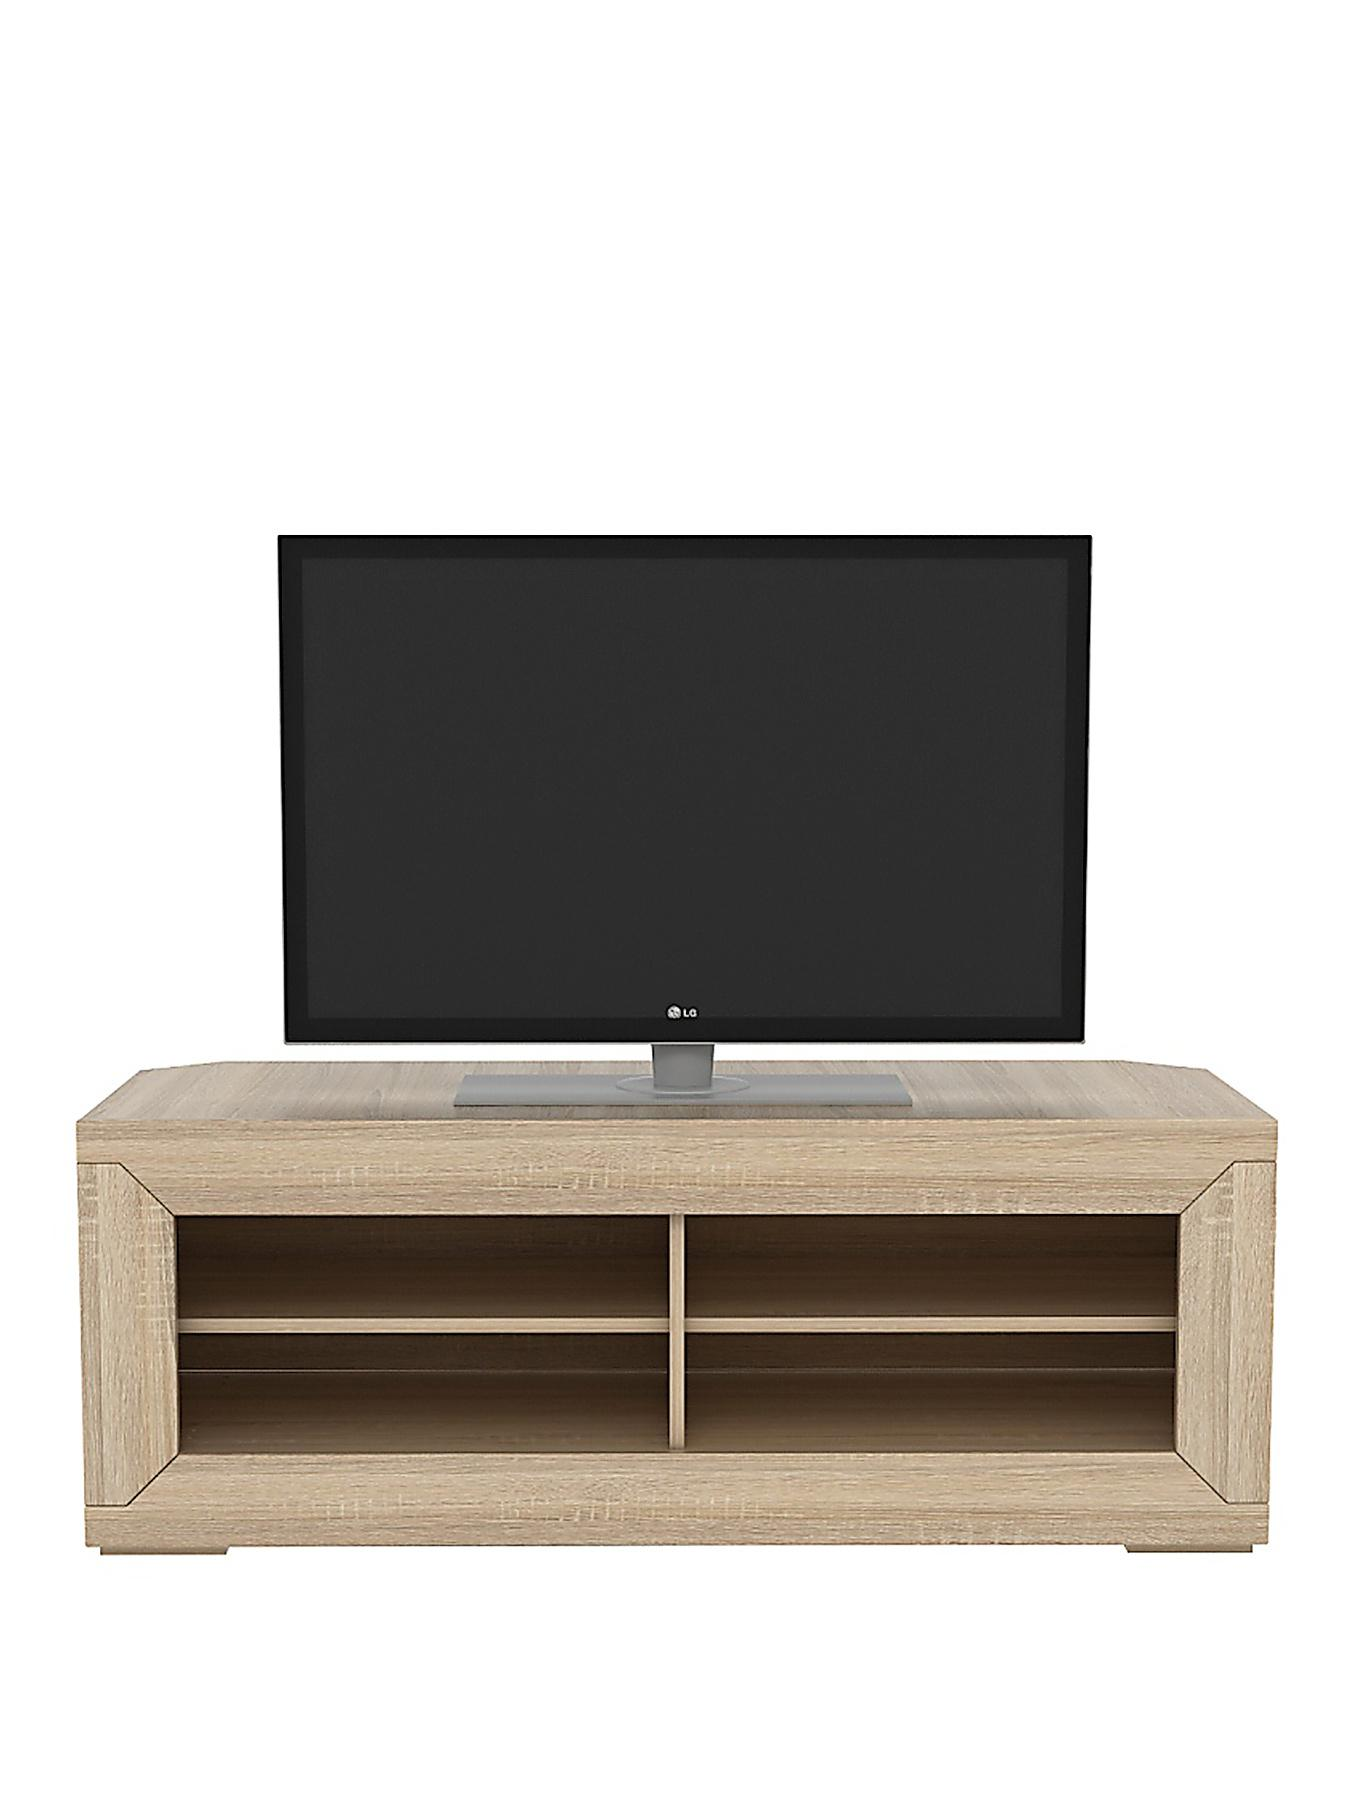 buy cheap 50 inch tv compare television accessories prices for best uk deals. Black Bedroom Furniture Sets. Home Design Ideas